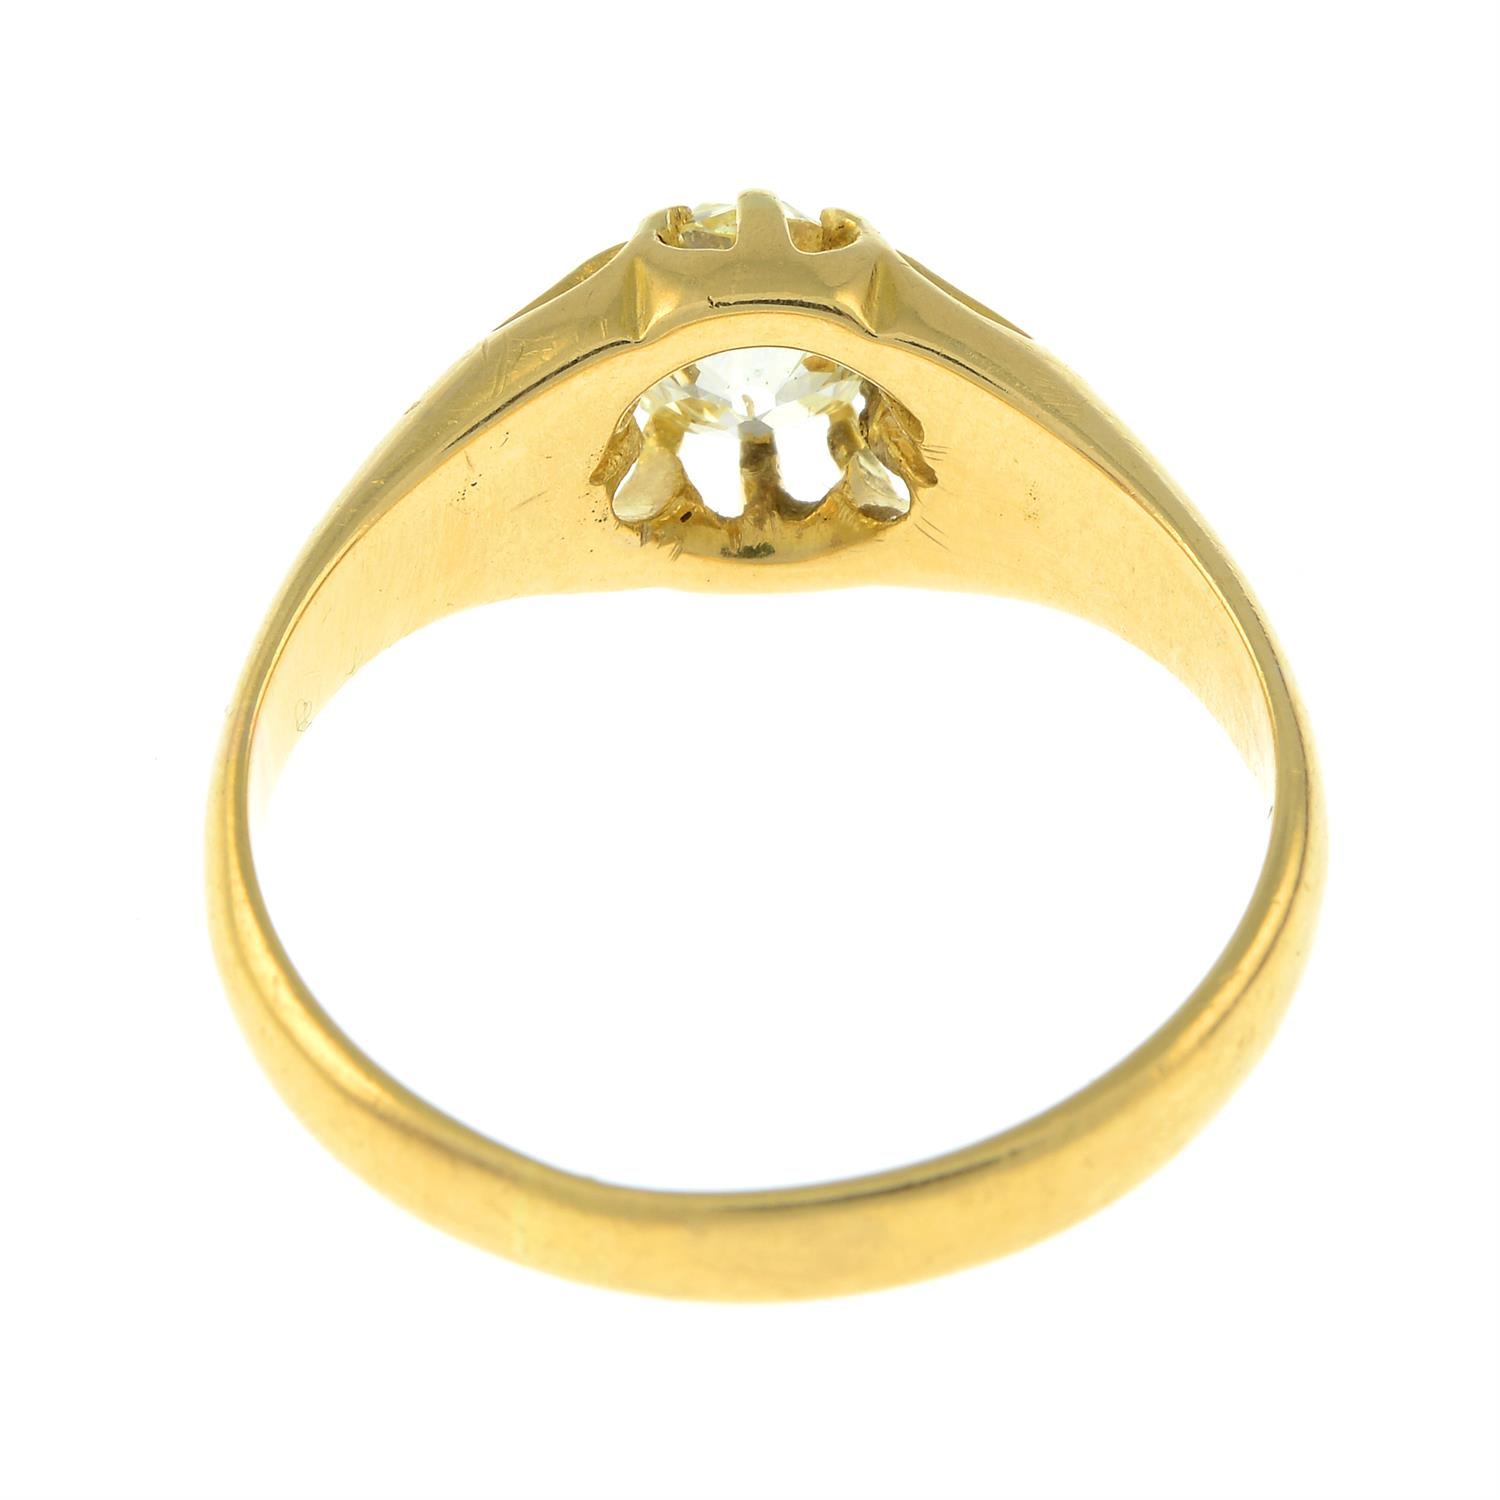 A late Victorian 18ct gold old-cut diamond single-stone ring. - Image 3 of 3